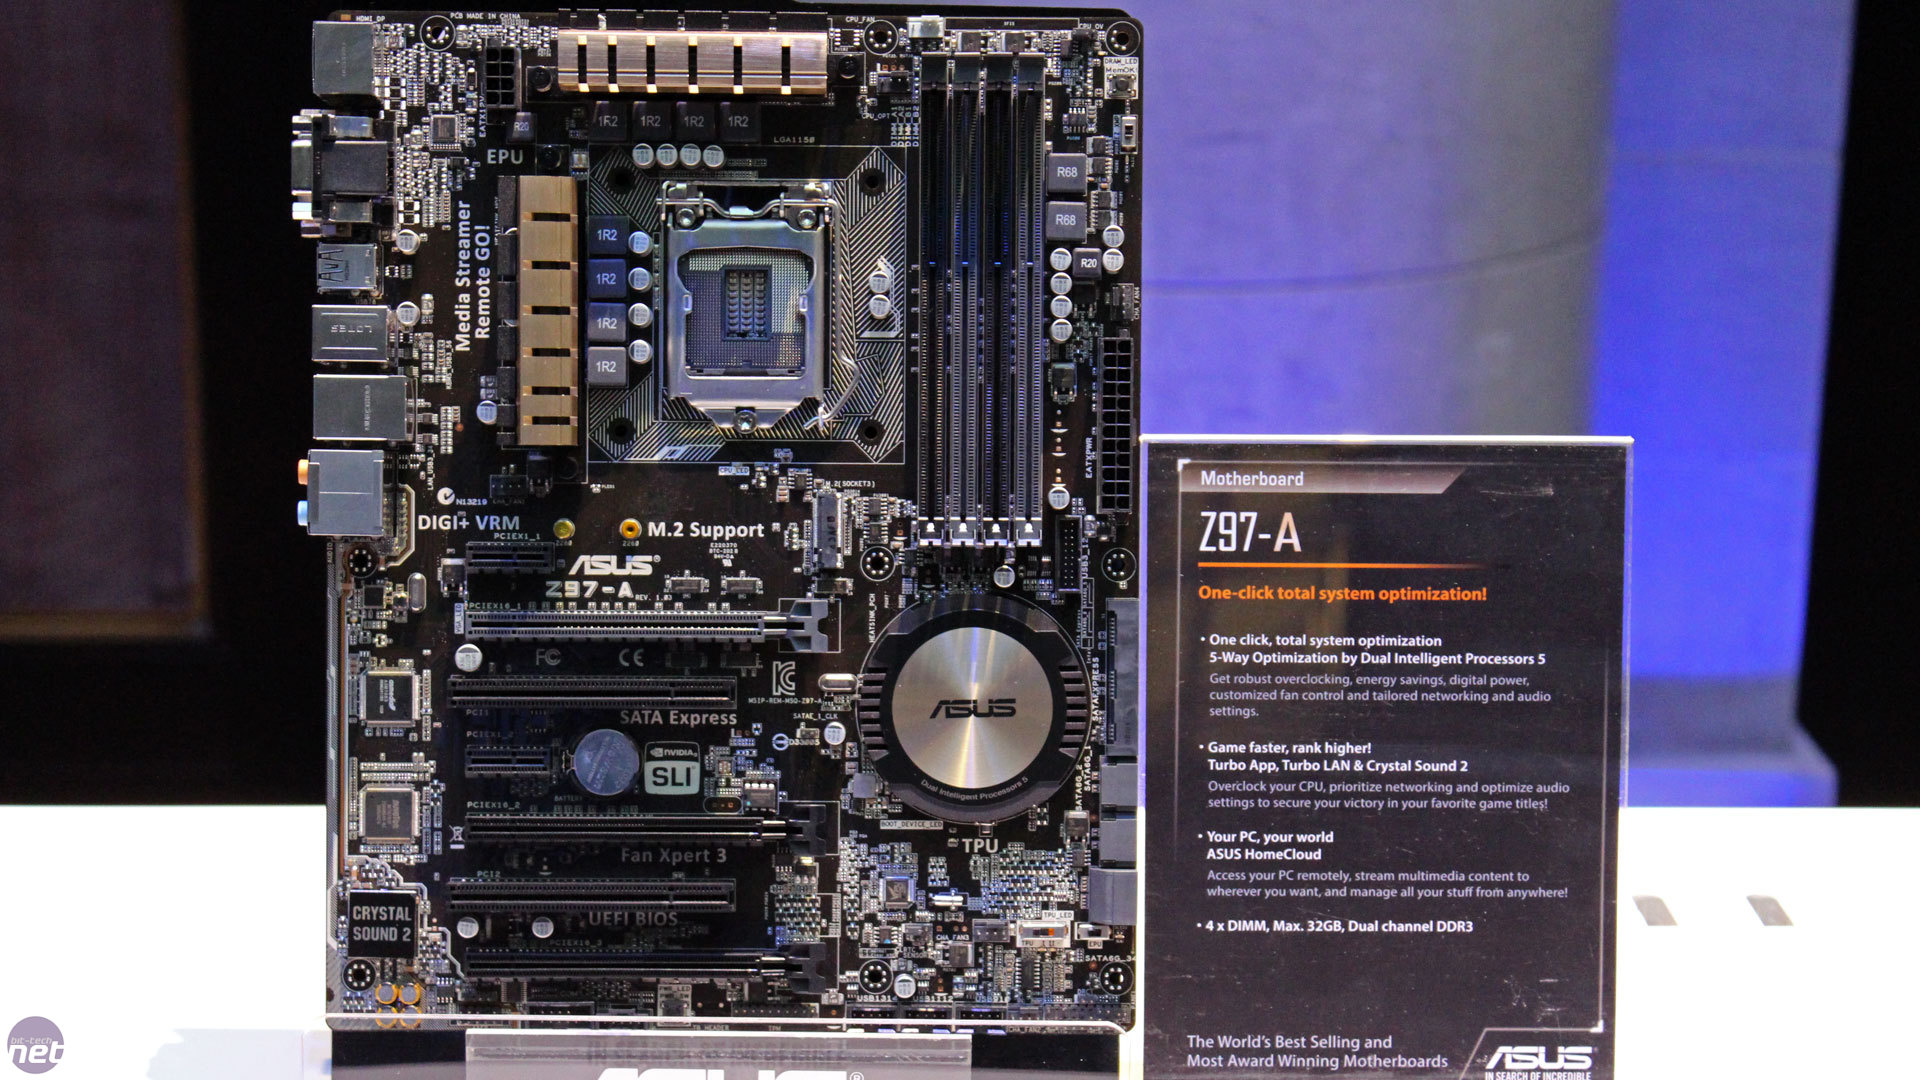 ASUS Z97A UEFI BIOS Overview  YouTube